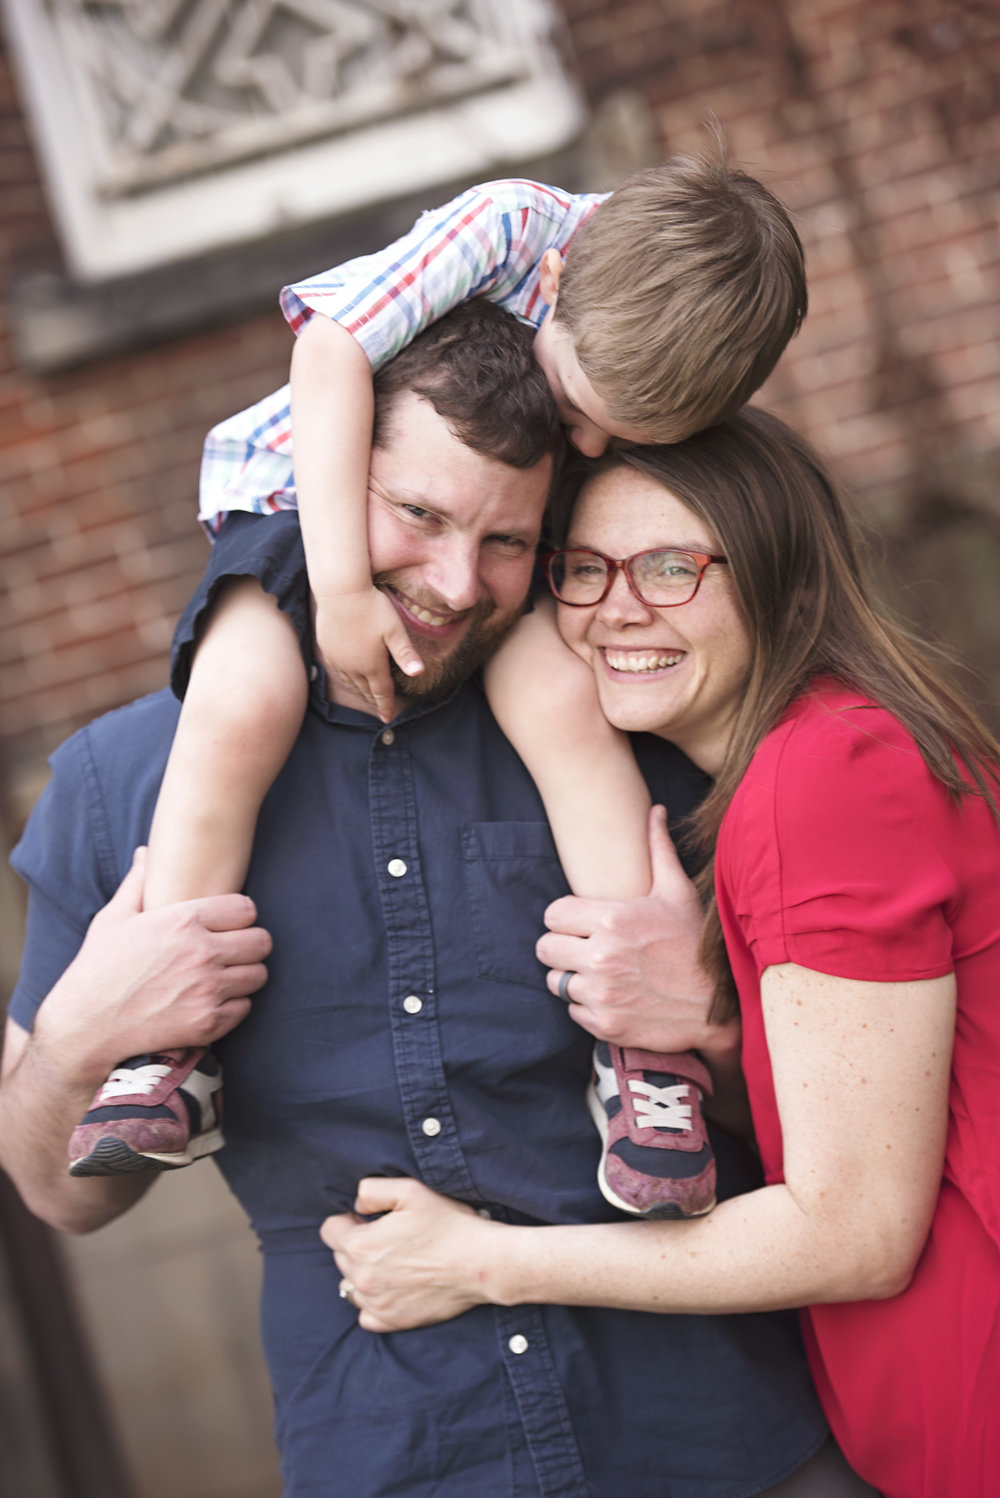 Heinrich_Family_SneakPeek_01_warmthedit_CLS_1013.jpg